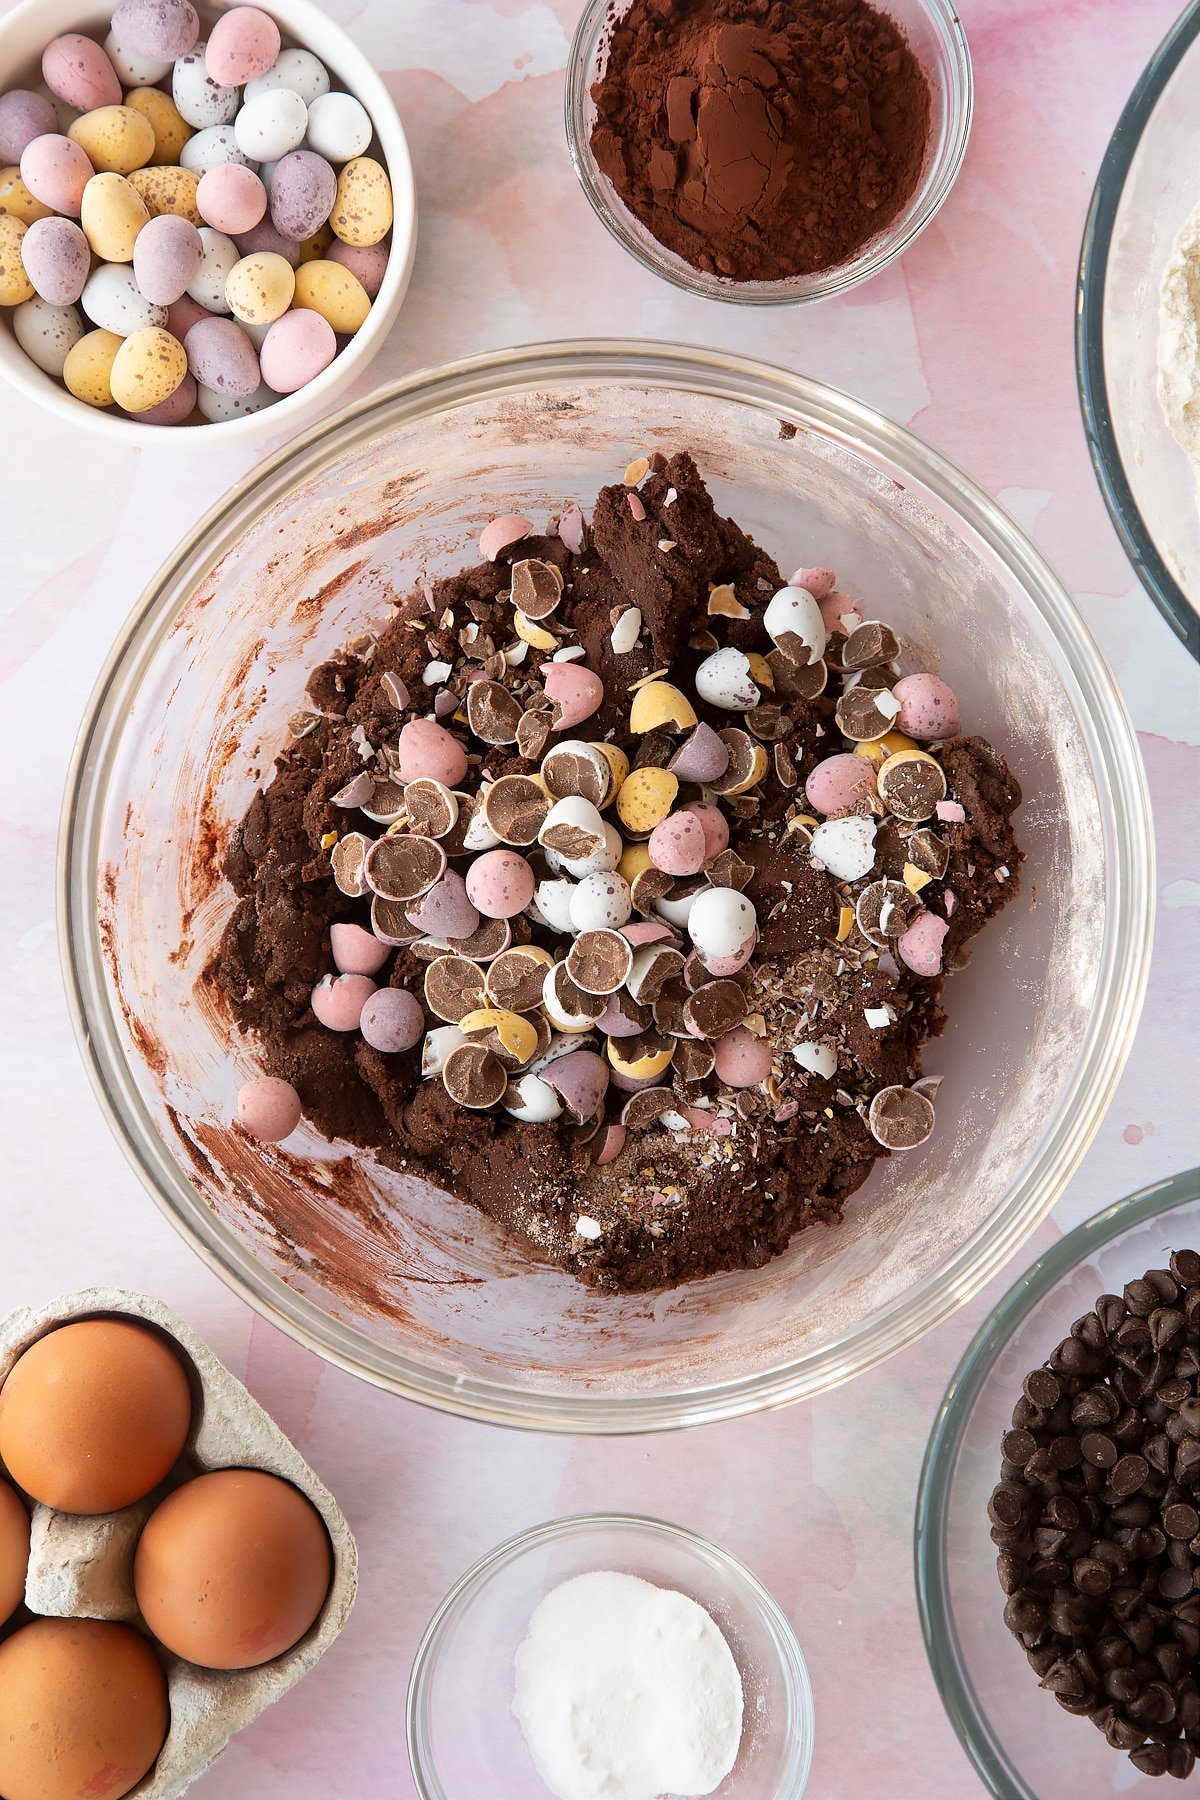 Chocolate cookie dough in a bowl with smashed Mini Eggs on top. Ingredients to make Chocolate Easter cookies surround the bowl.